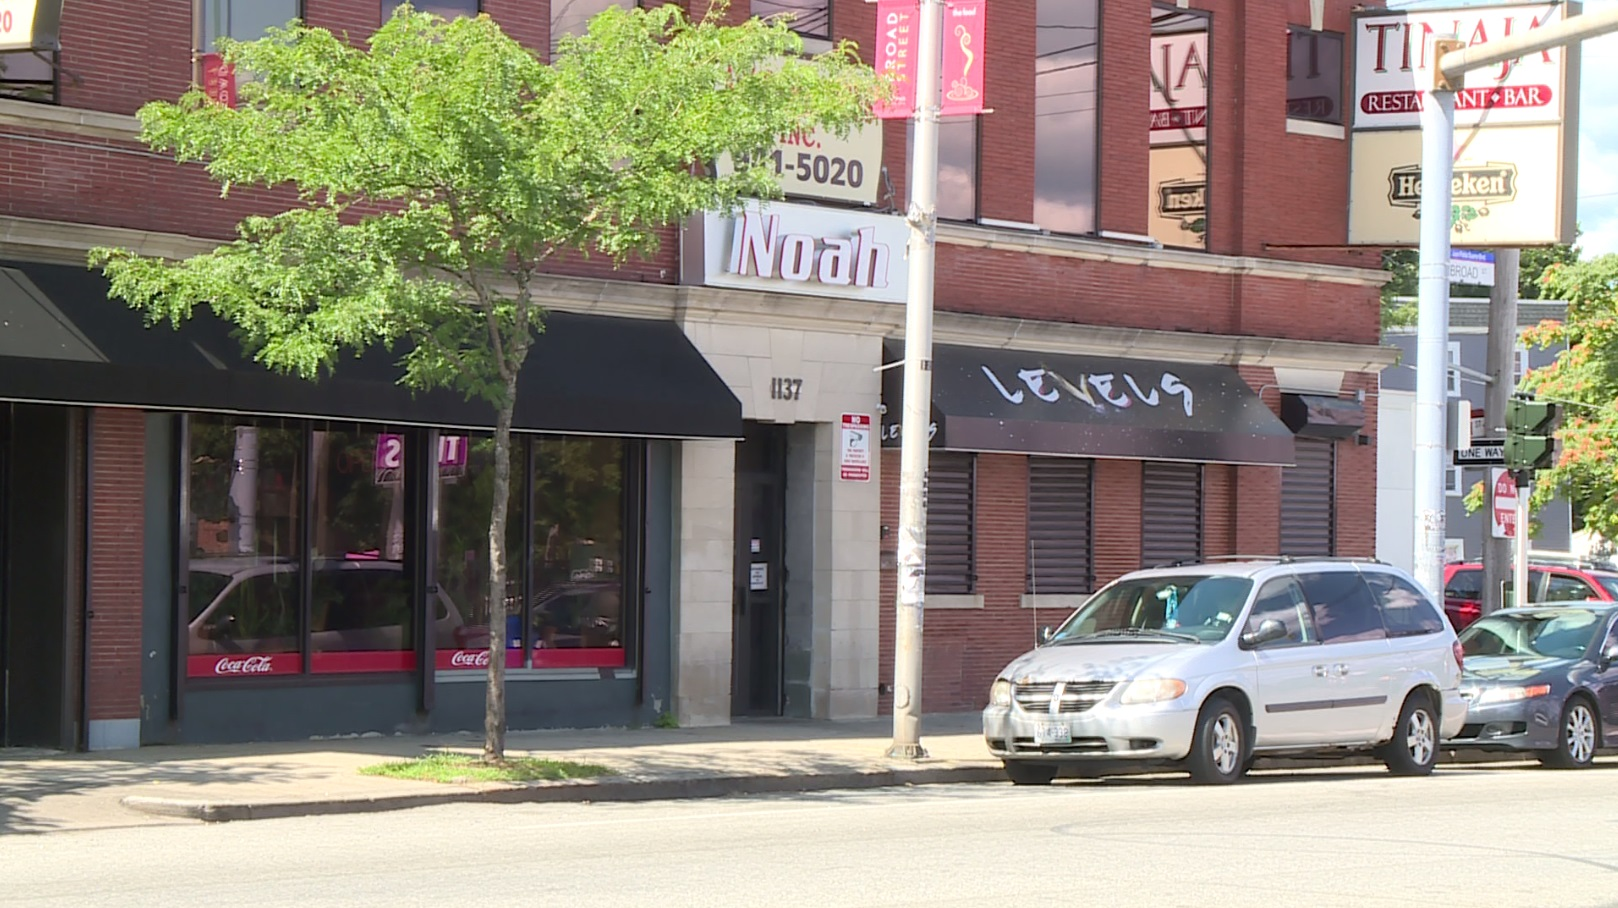 Providence Board of Licenses orders Noah Lounge closed after